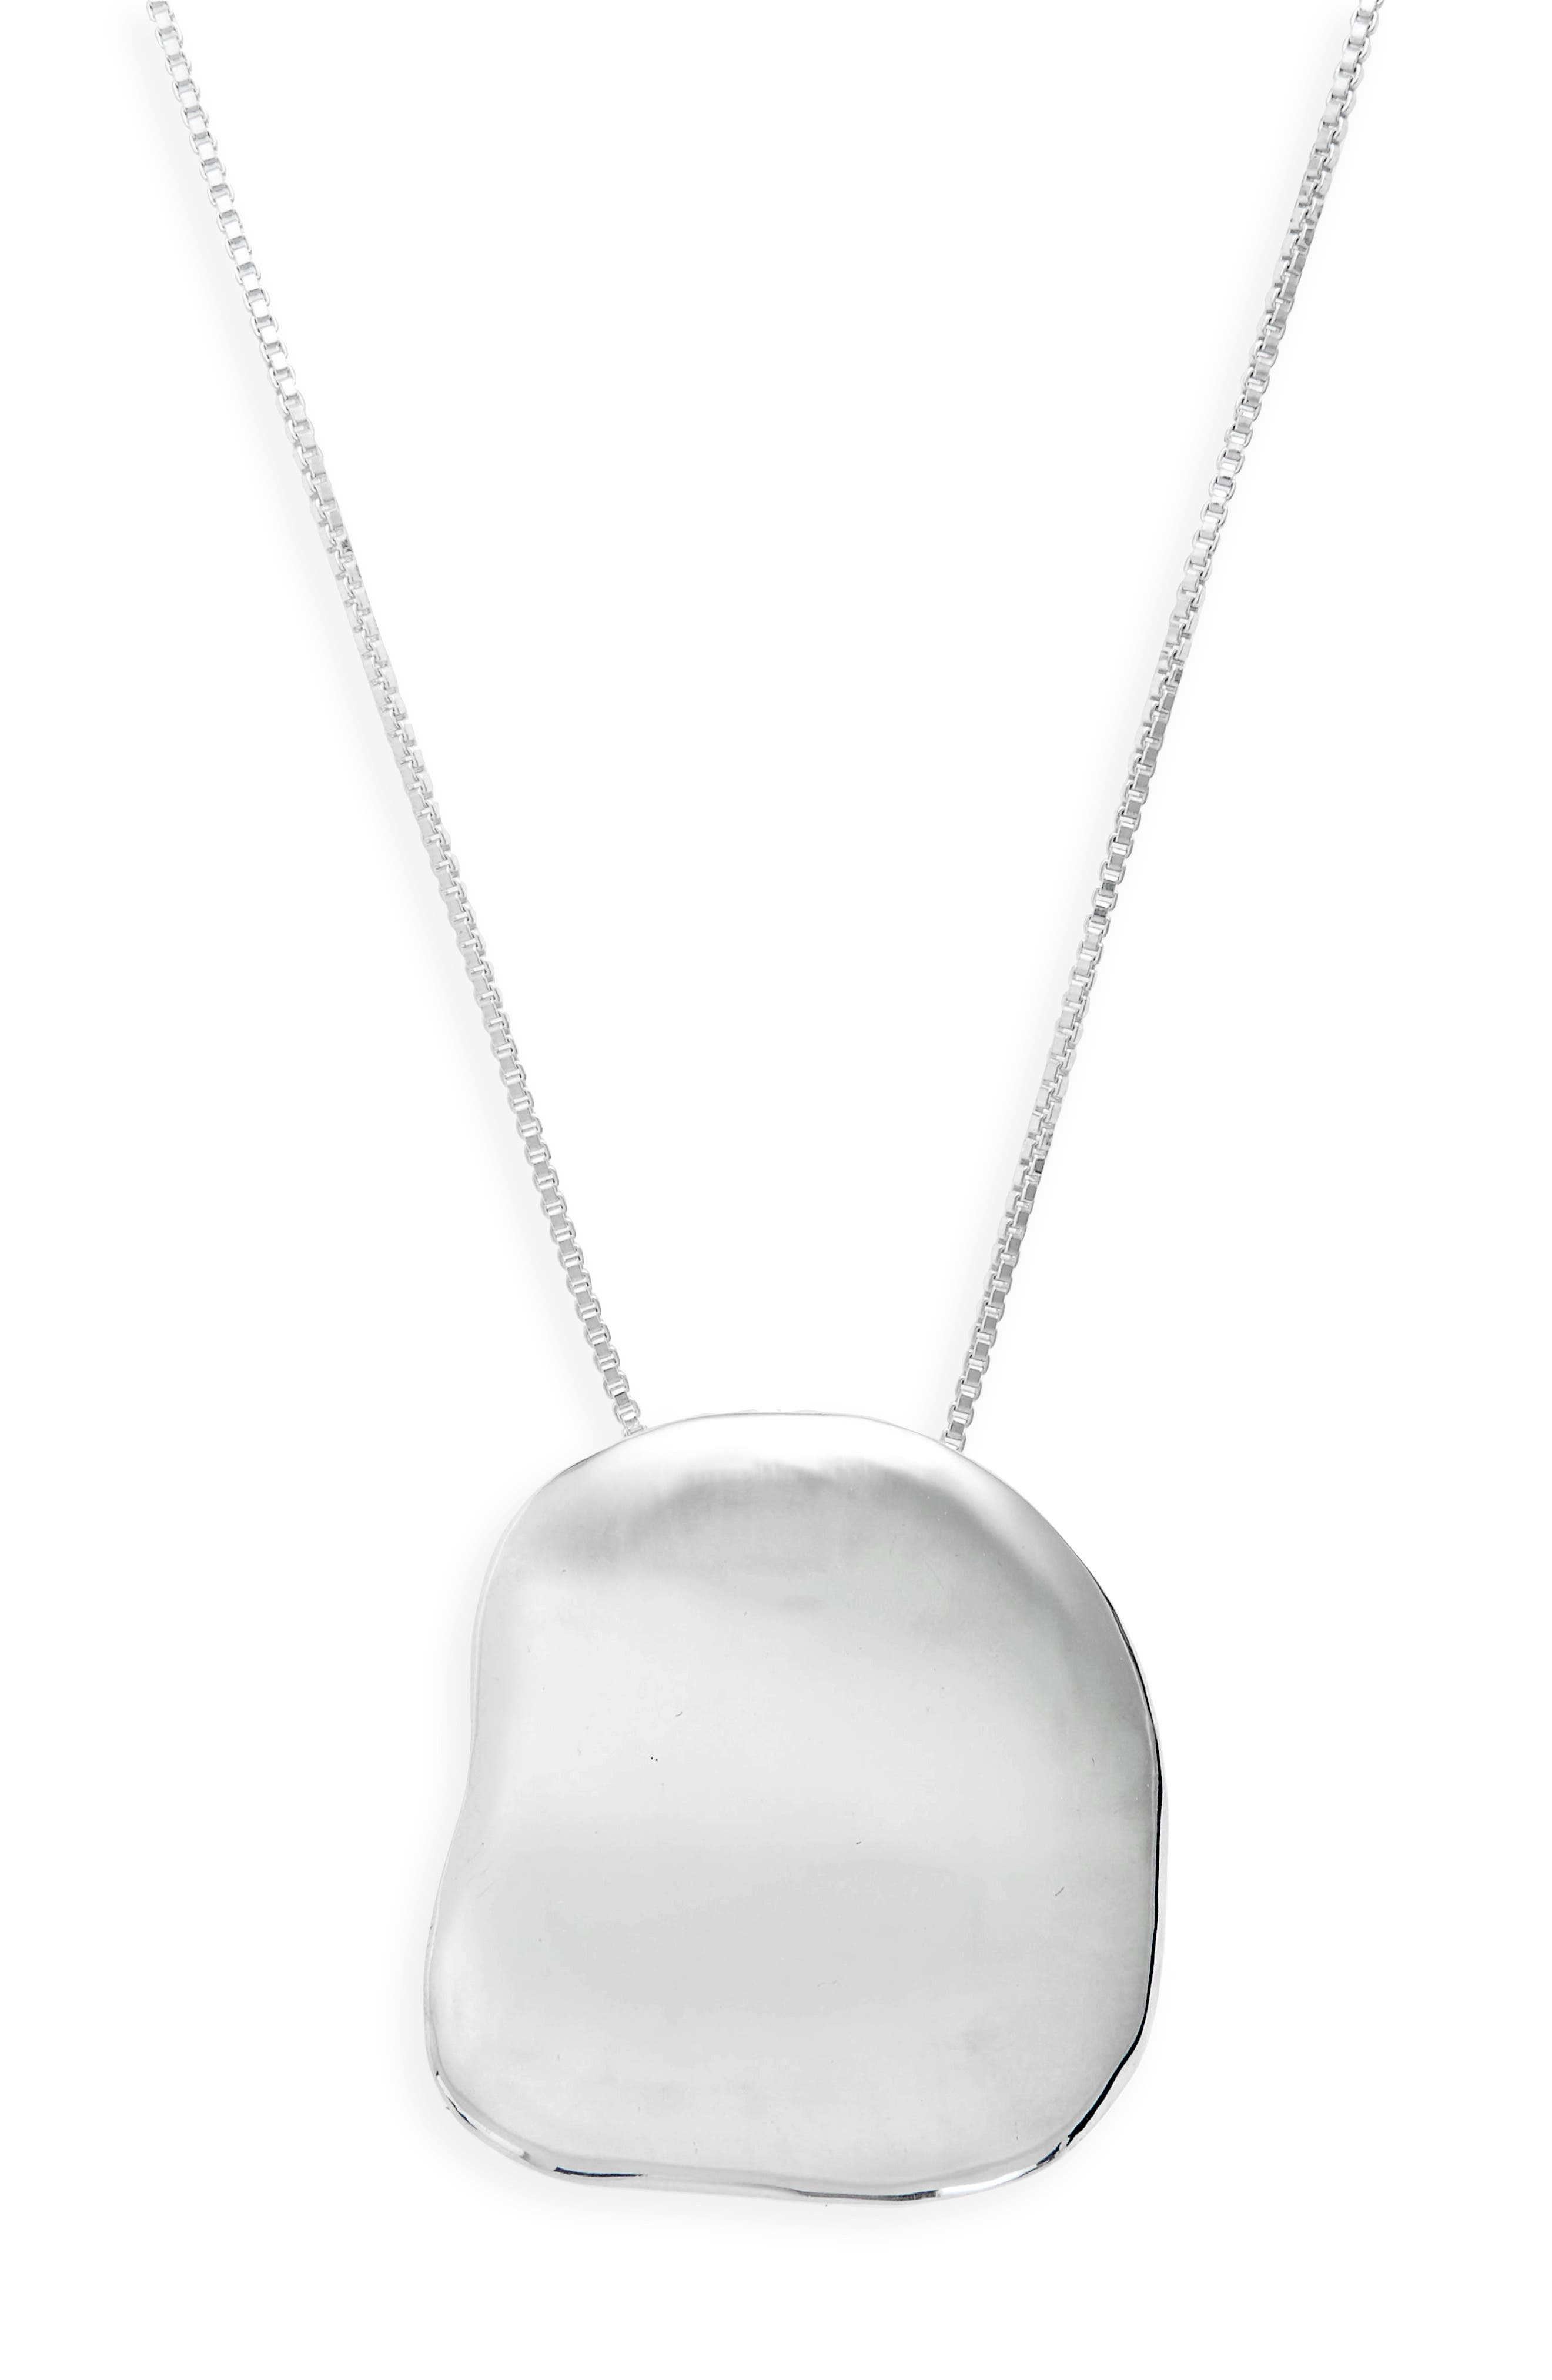 Big Dip Pendant Necklace,                             Alternate thumbnail 2, color,                             STERLING SILVER